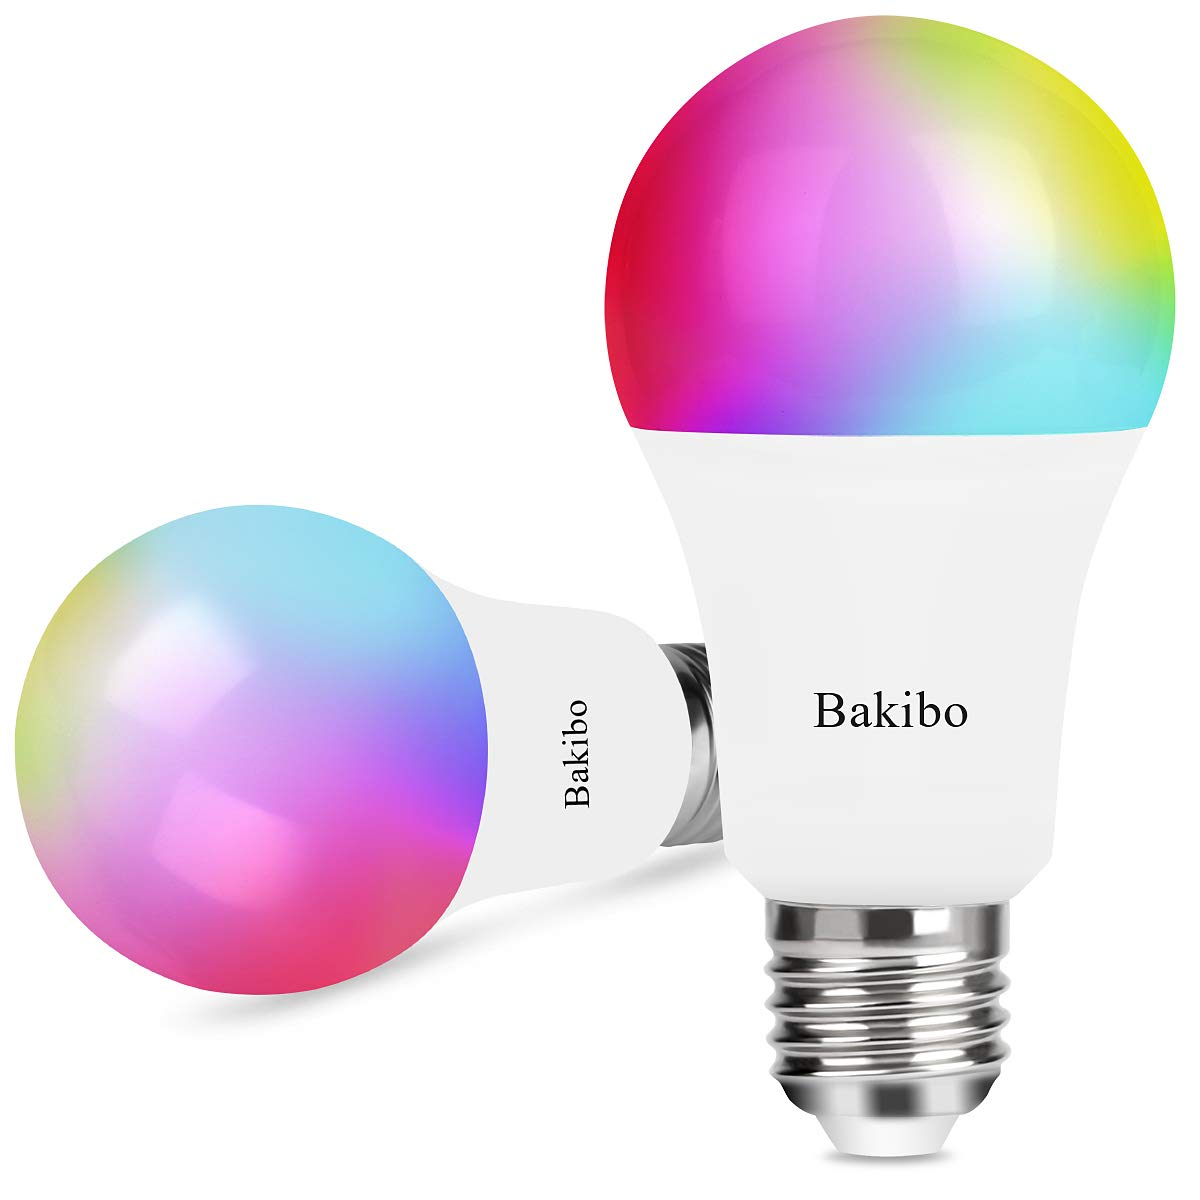 bakibo Lampadina Wifi Intelligente Led Smart Dimmerabile 9W 1000Lm, E27 Multicolore Lampadina Compatibile con Alexa, Google Home e IFTTT, A19 90W Equivalente RGB Colore Cambiante Lampadina, 2 Pcs